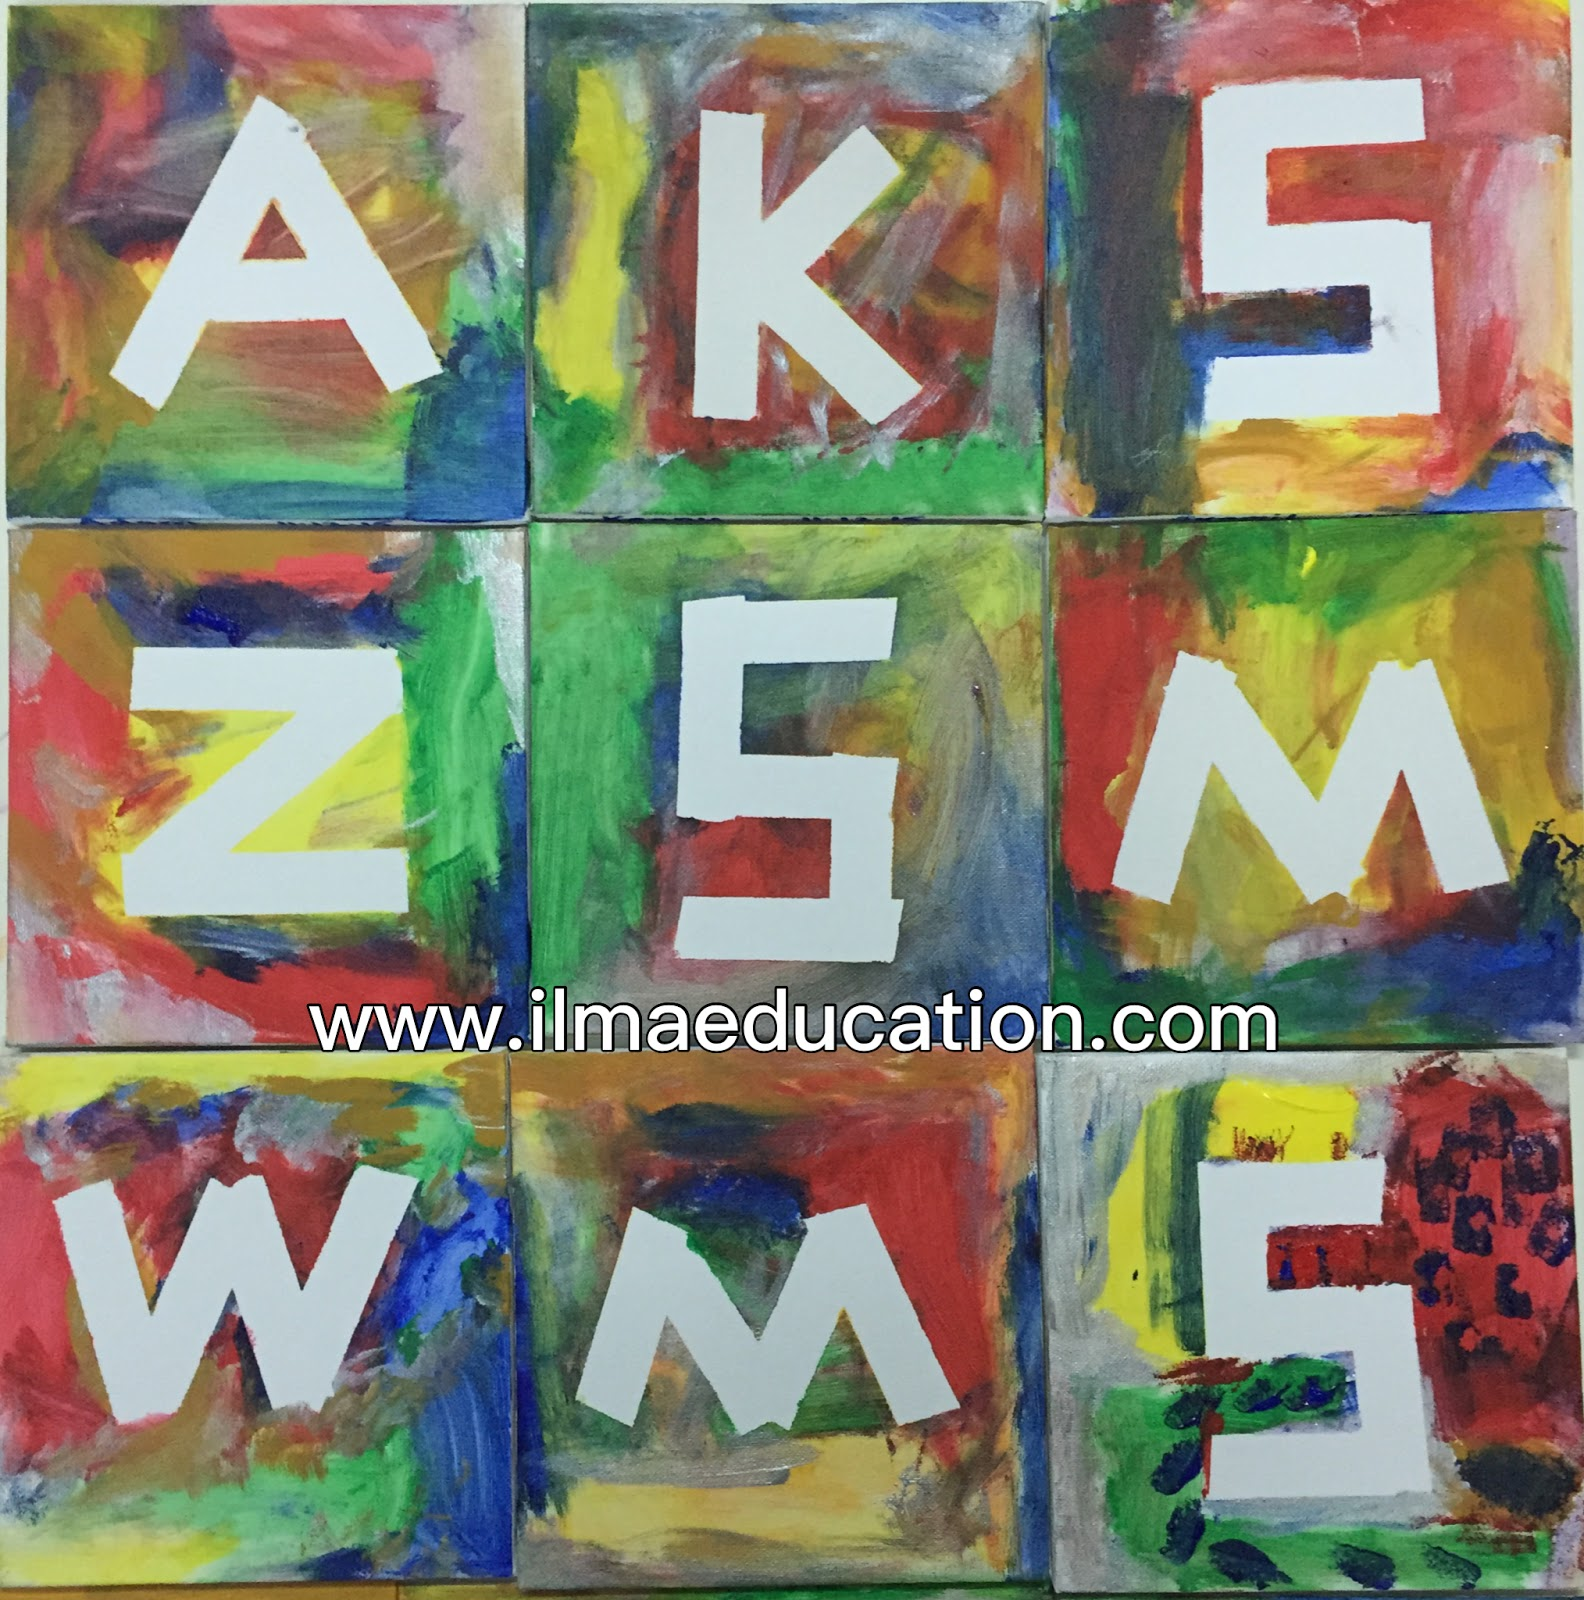 ilma education masking tape letter painting With masking letters for painting